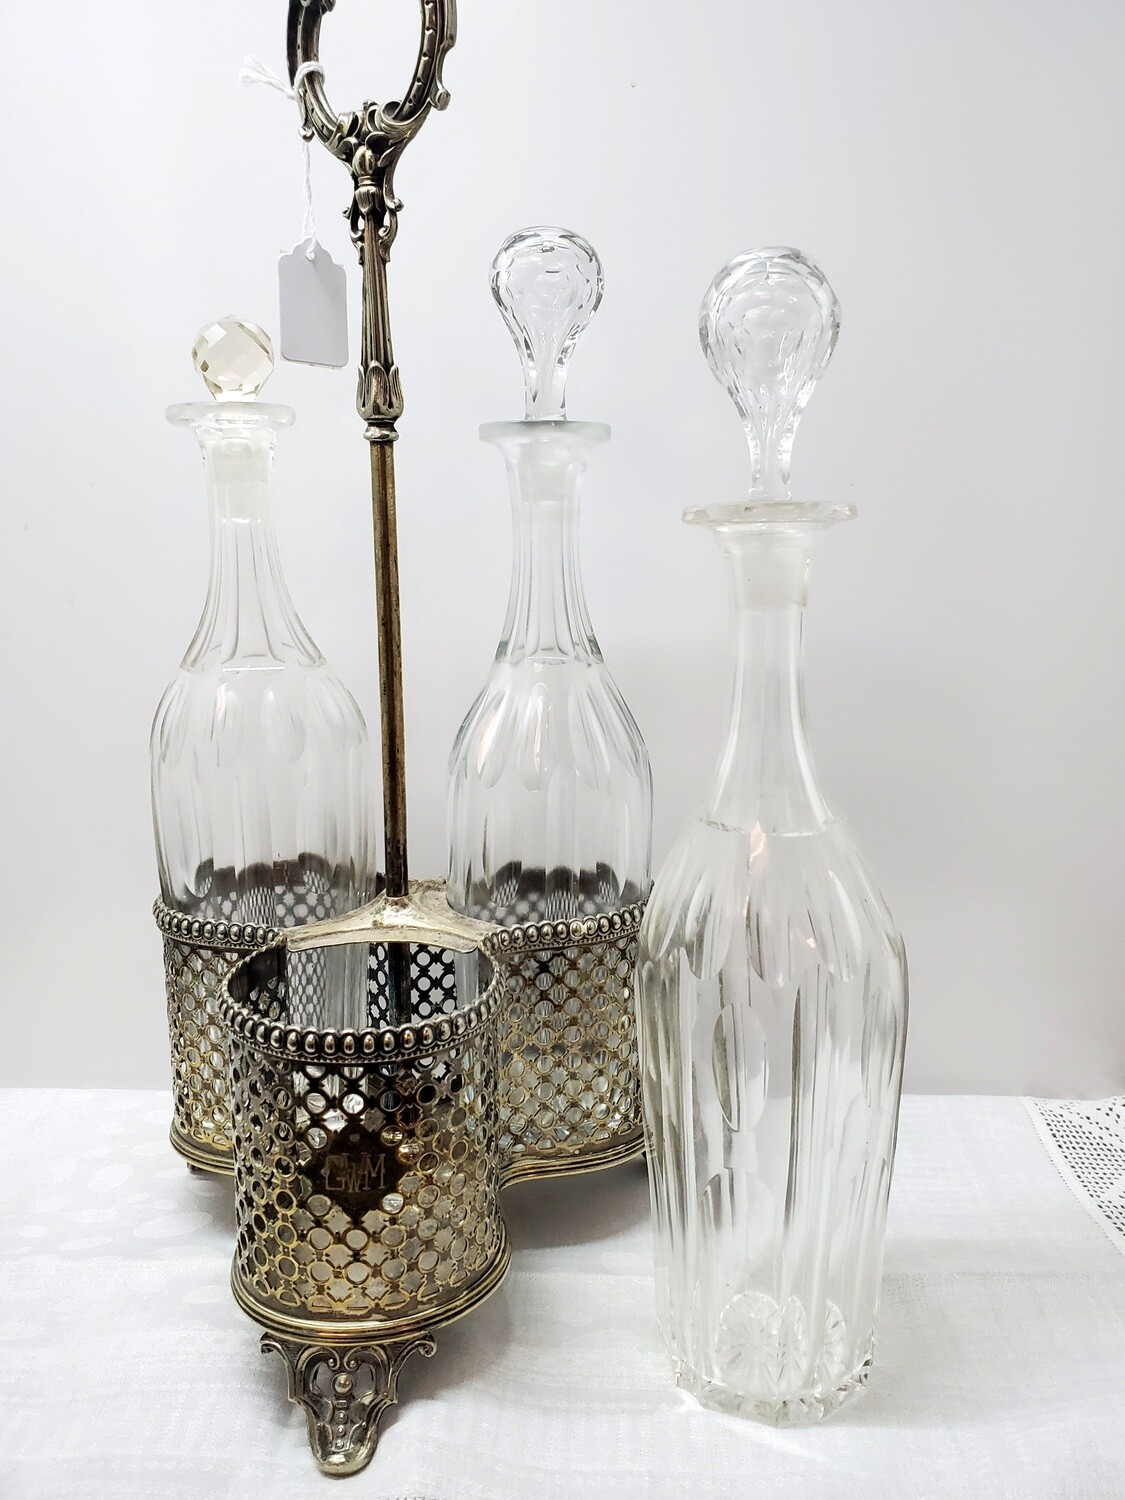 Crystal Decanter set - 3 decanters in Silver plate carrier - B34